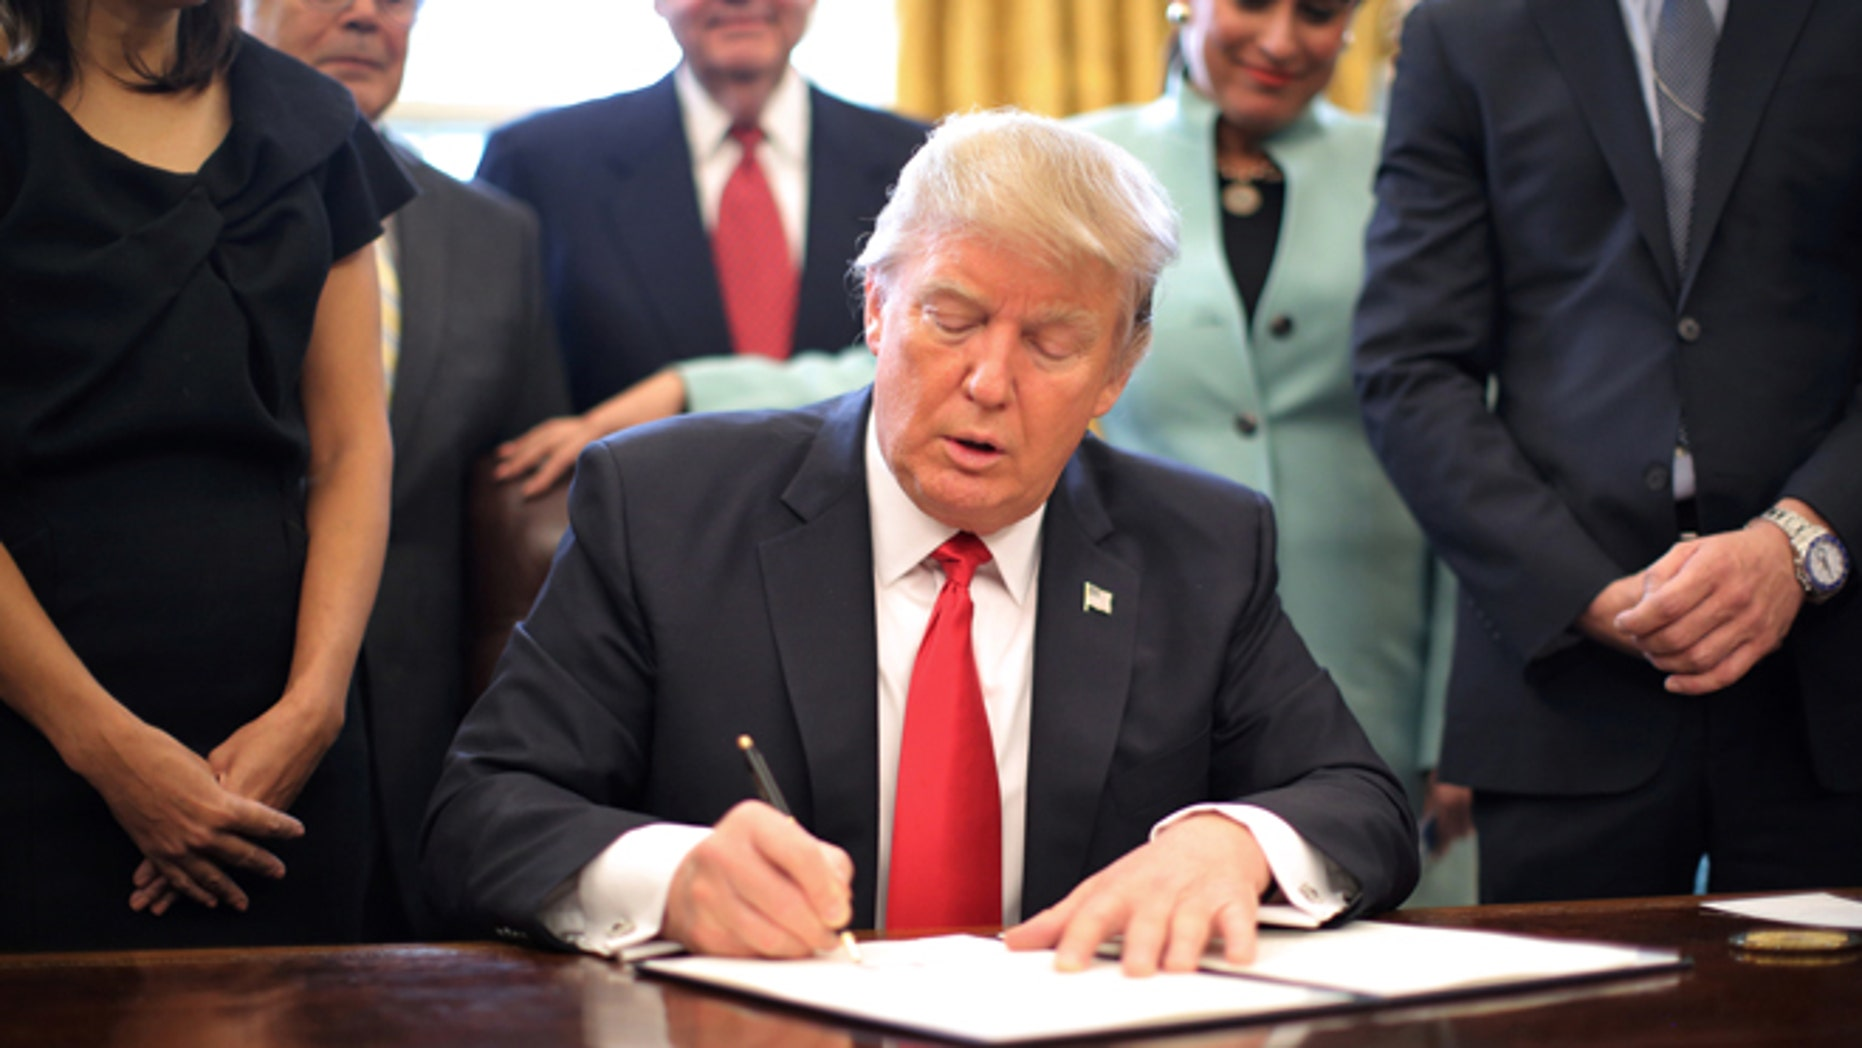 FILE -- January 30, 2017: President Donald Trump signs an executive order cutting regulations, accompanied by small business leaders at the Oval Office of the White House in Washington.